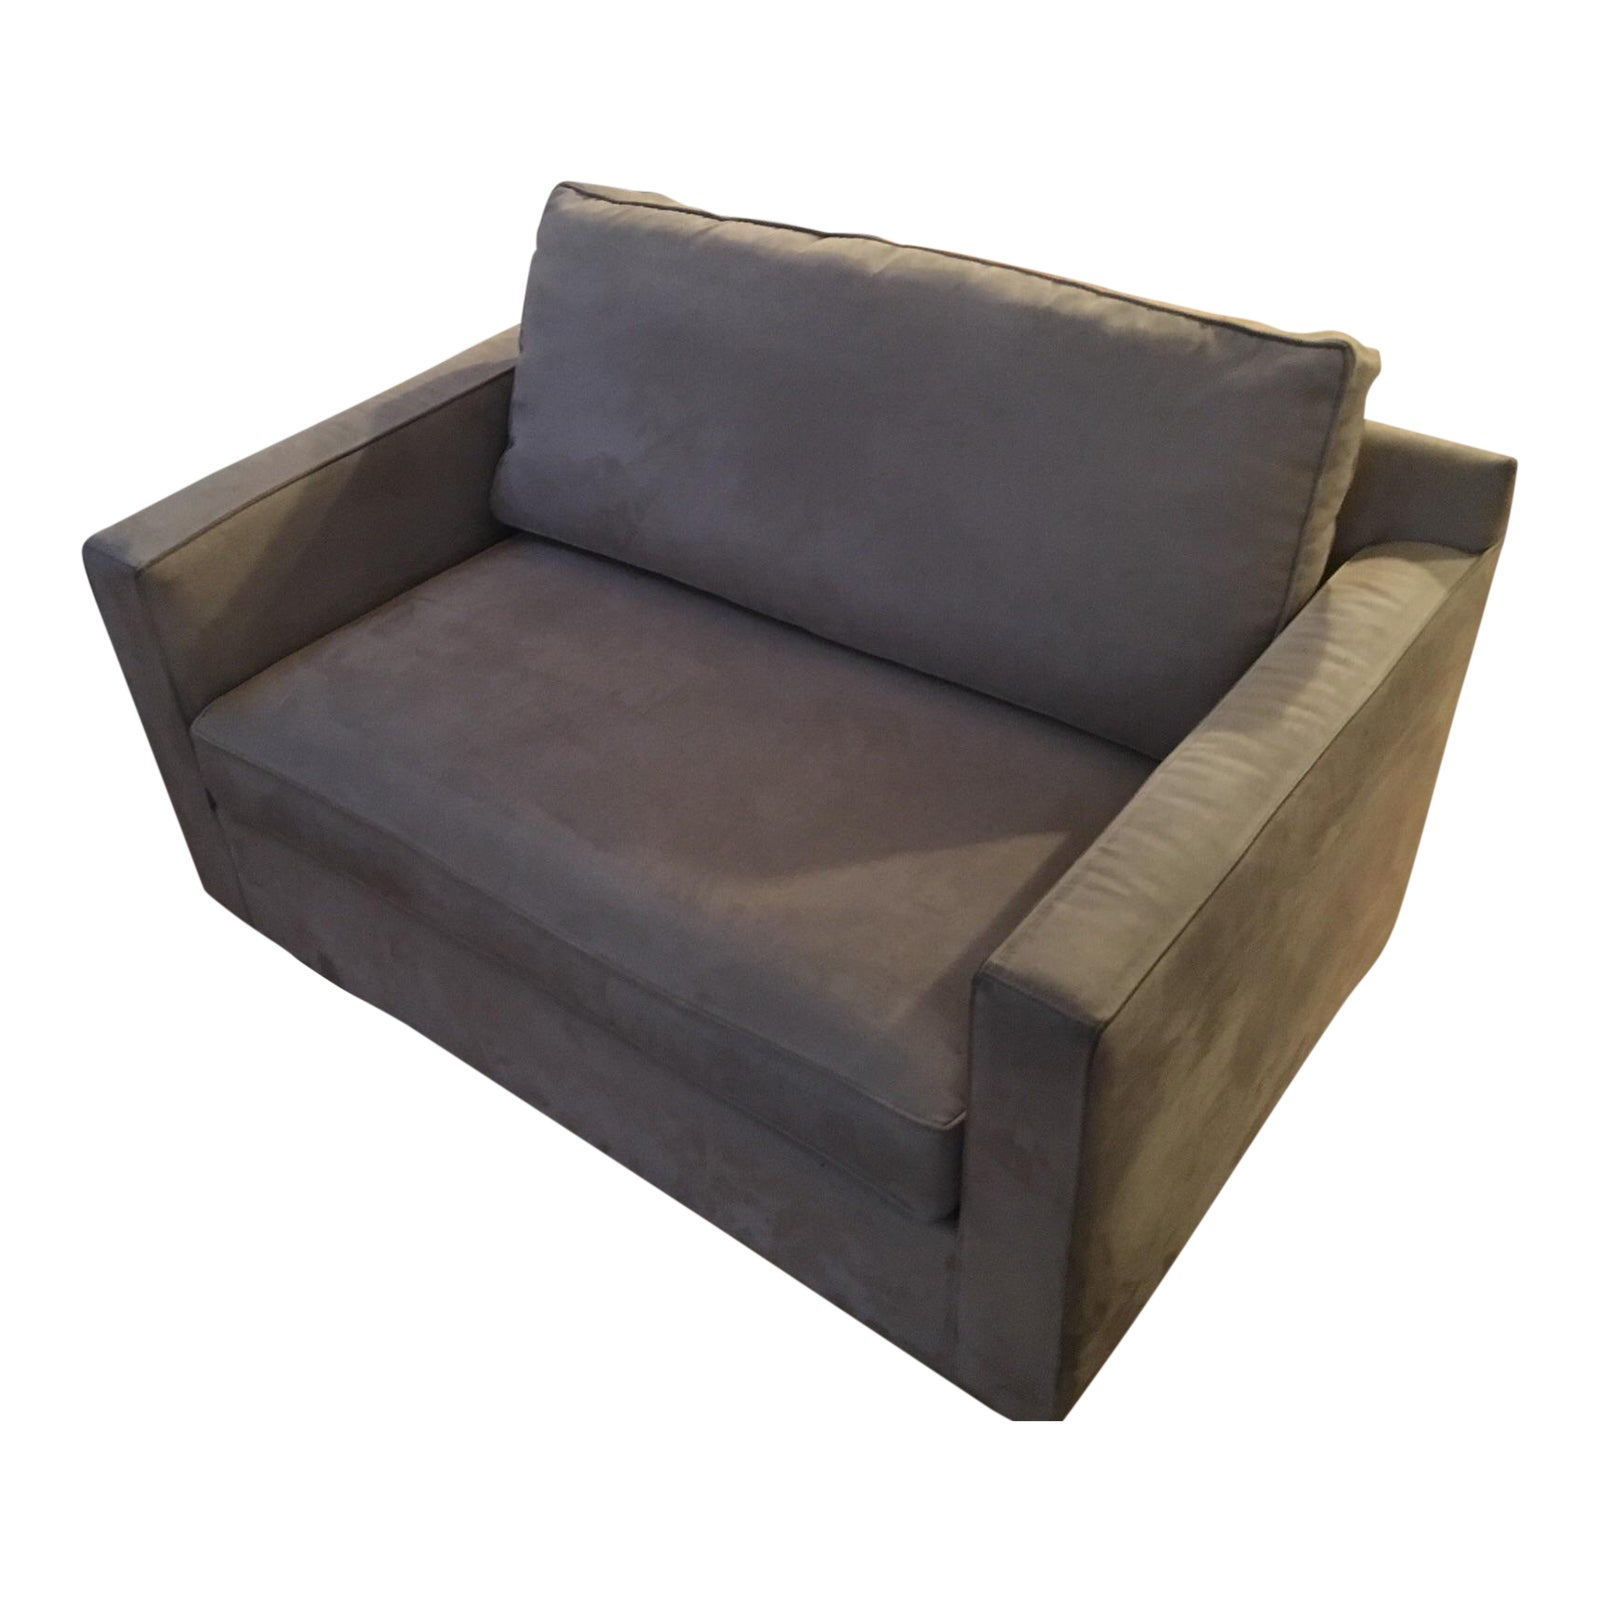 Tremendous Crate Barrel Davis Twin Sleeper Sofa Cjindustries Chair Design For Home Cjindustriesco